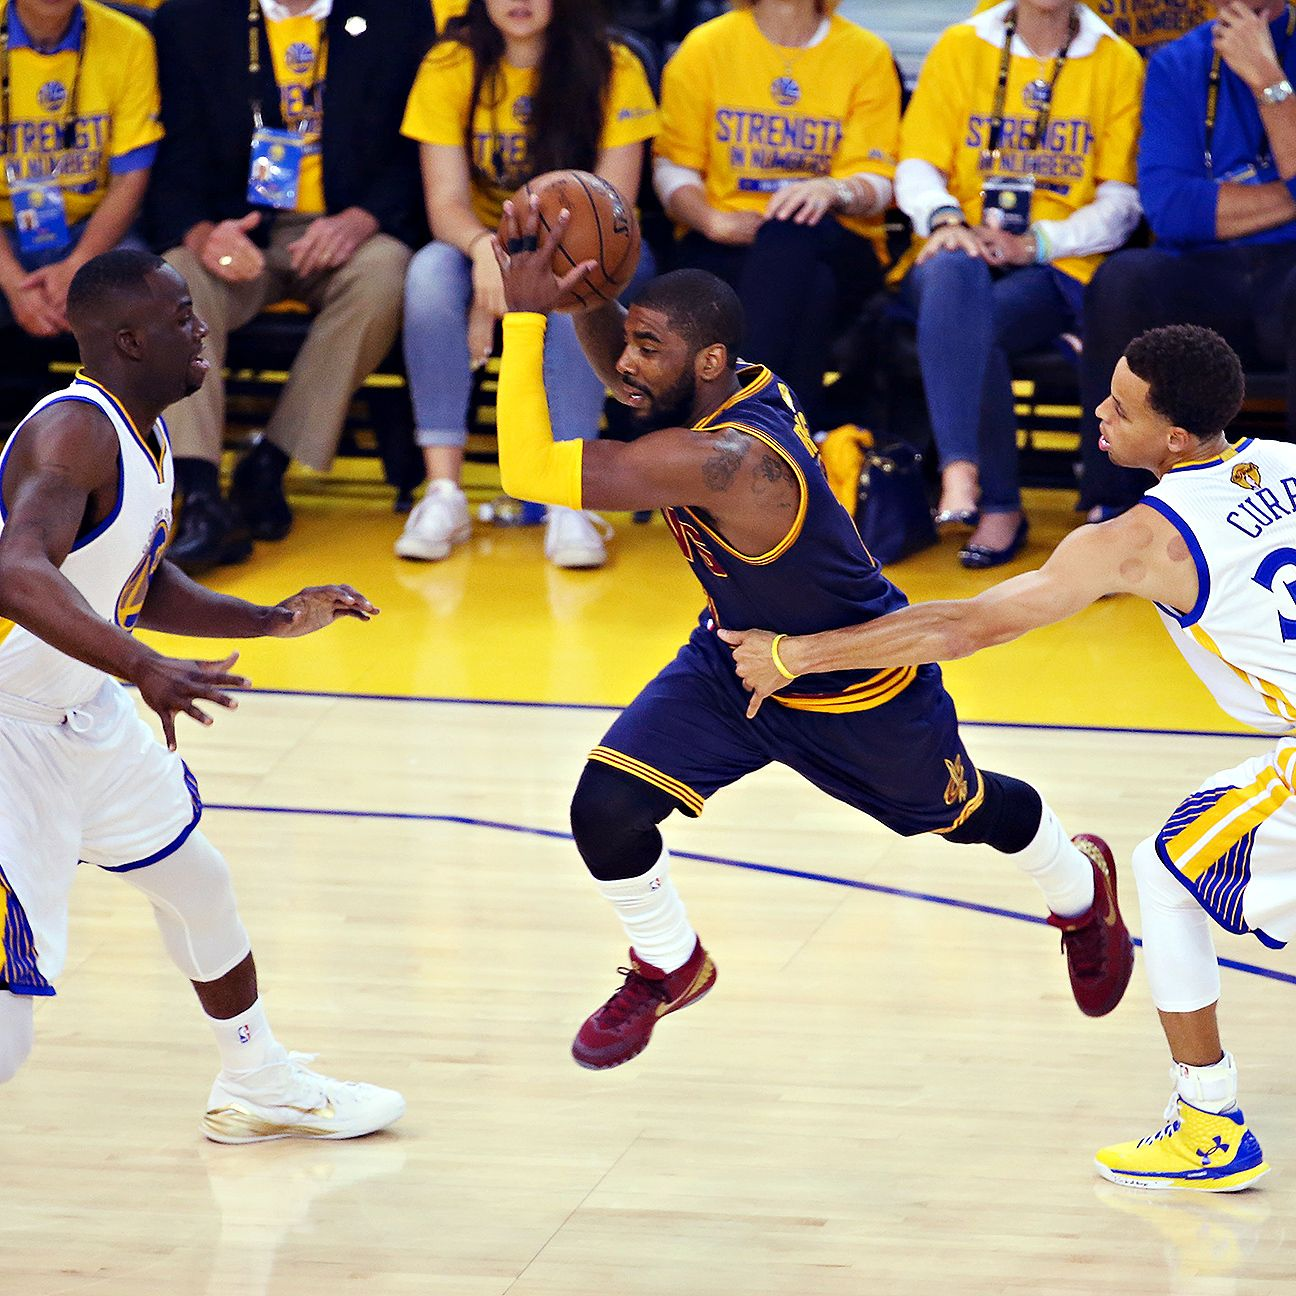 Emotions run high after Kyrie Irving's knee setback - Cleveland Cavaliers Blog - ESPN